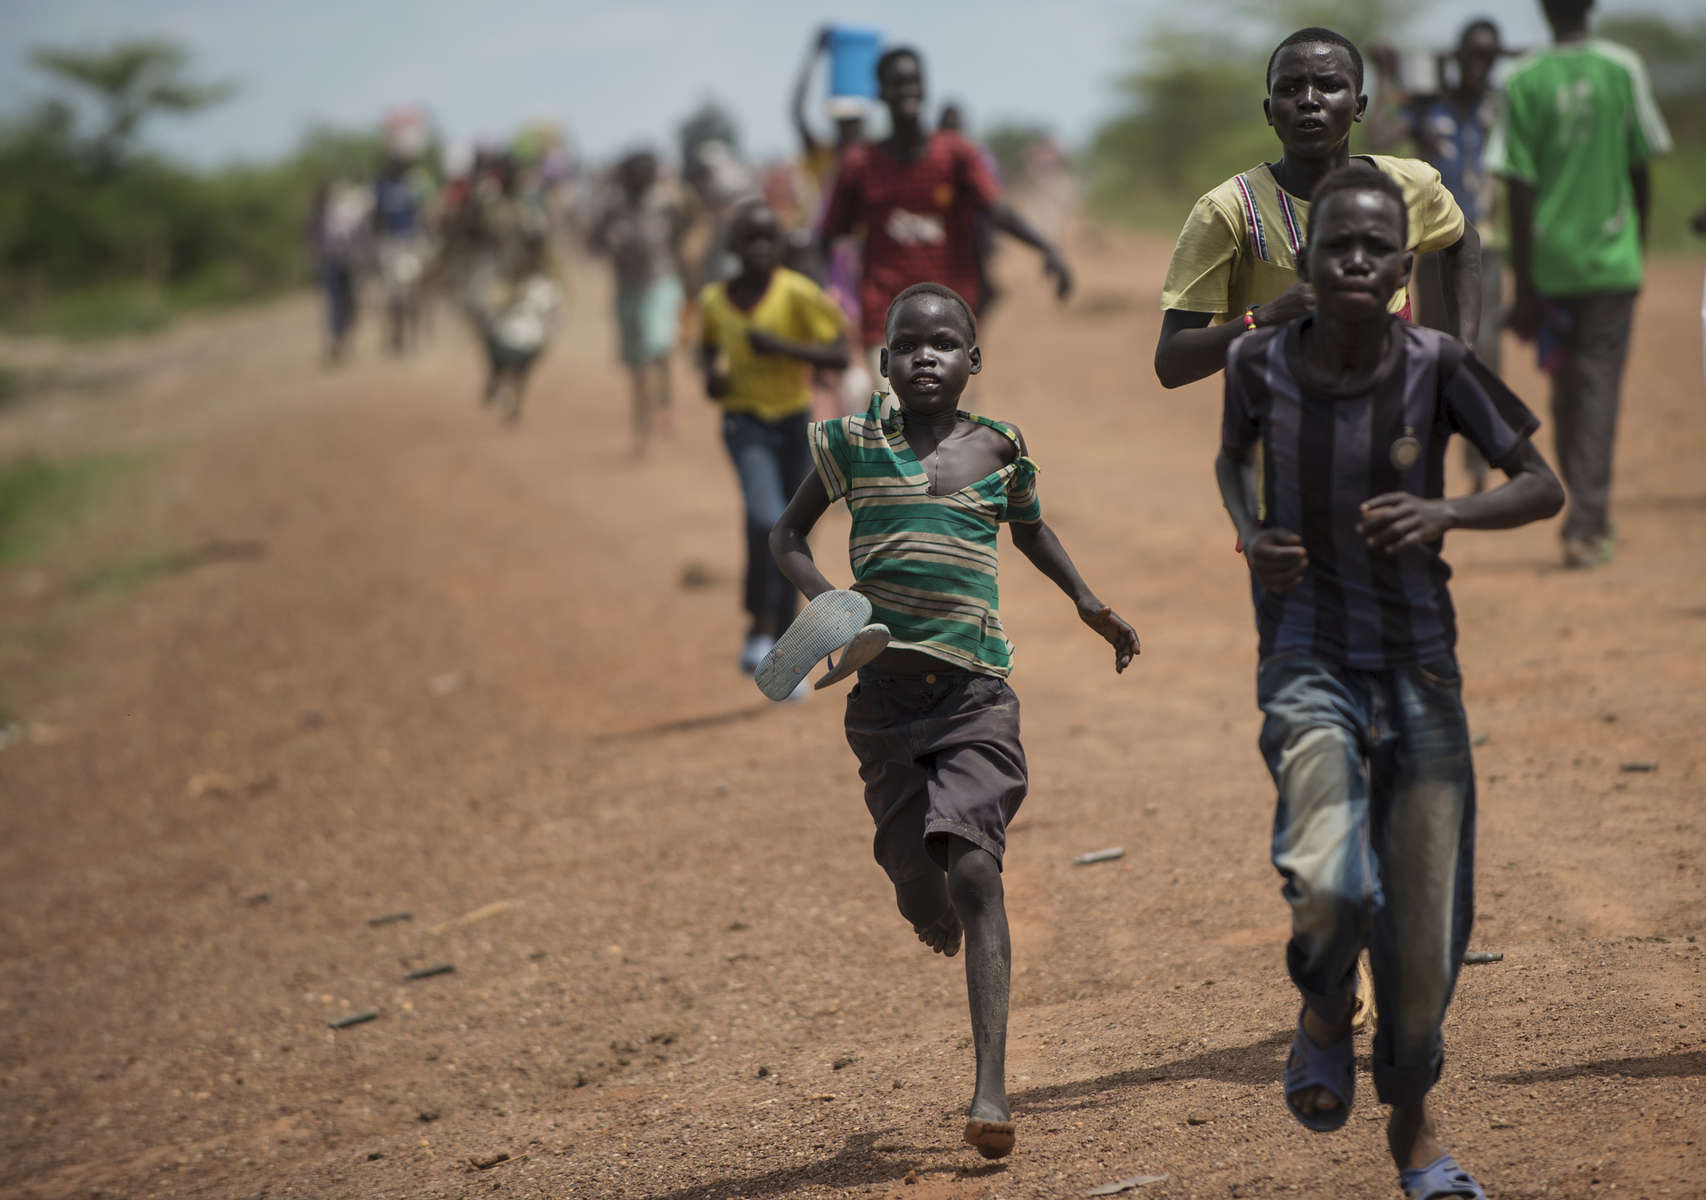 South Sudanese children and women run towards the camp for displaced at the United Nations Mission after fearing they saw a government troop in the bush as Soldiers with the Sudanese Peoples Liberation Army retreat from Bentiu following heavy battle with the opposition forces in South Sudan, May 5, 2014.  One million Southern Sudanese have been displaced from their homes as the civil war rages in the country, pitting ethnic Nu'er against Dinka.  (Credit: Lynsey Addario for The New York Times)